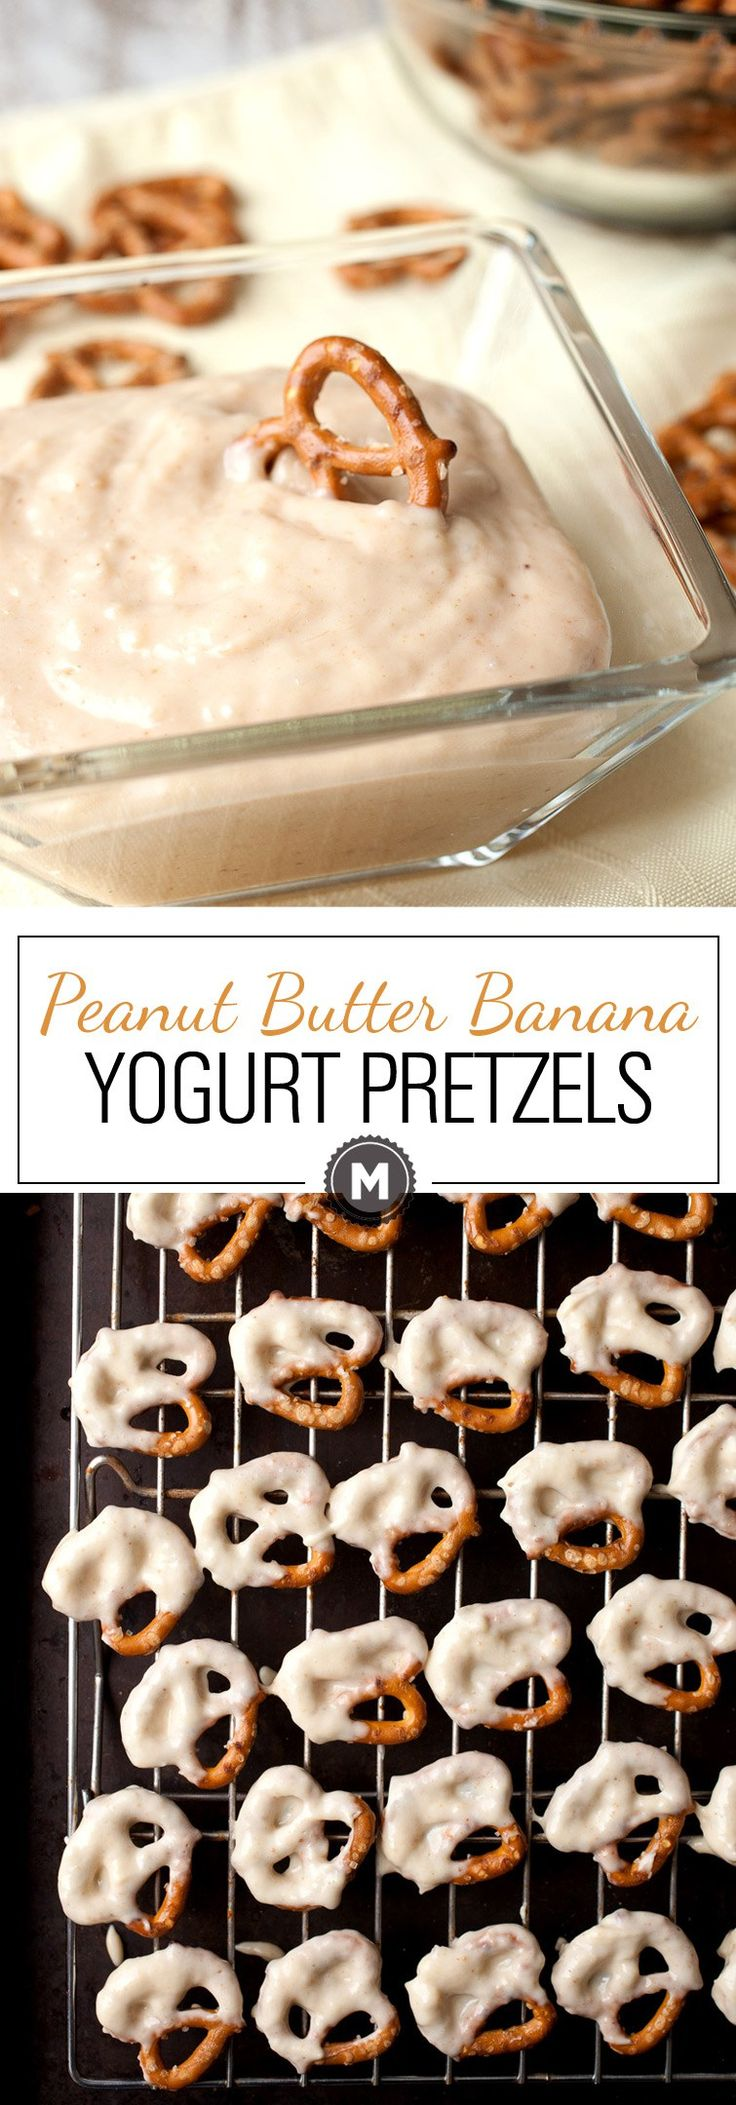 Peanut Butter Banana Yogurt Pretzels: A quick and easy 4-ingredient pretzel dip that's just sweet enough to be super-addictive. A great easy snack for kids, but adults will love the sweet and salty combo as well! | macheesmo.com